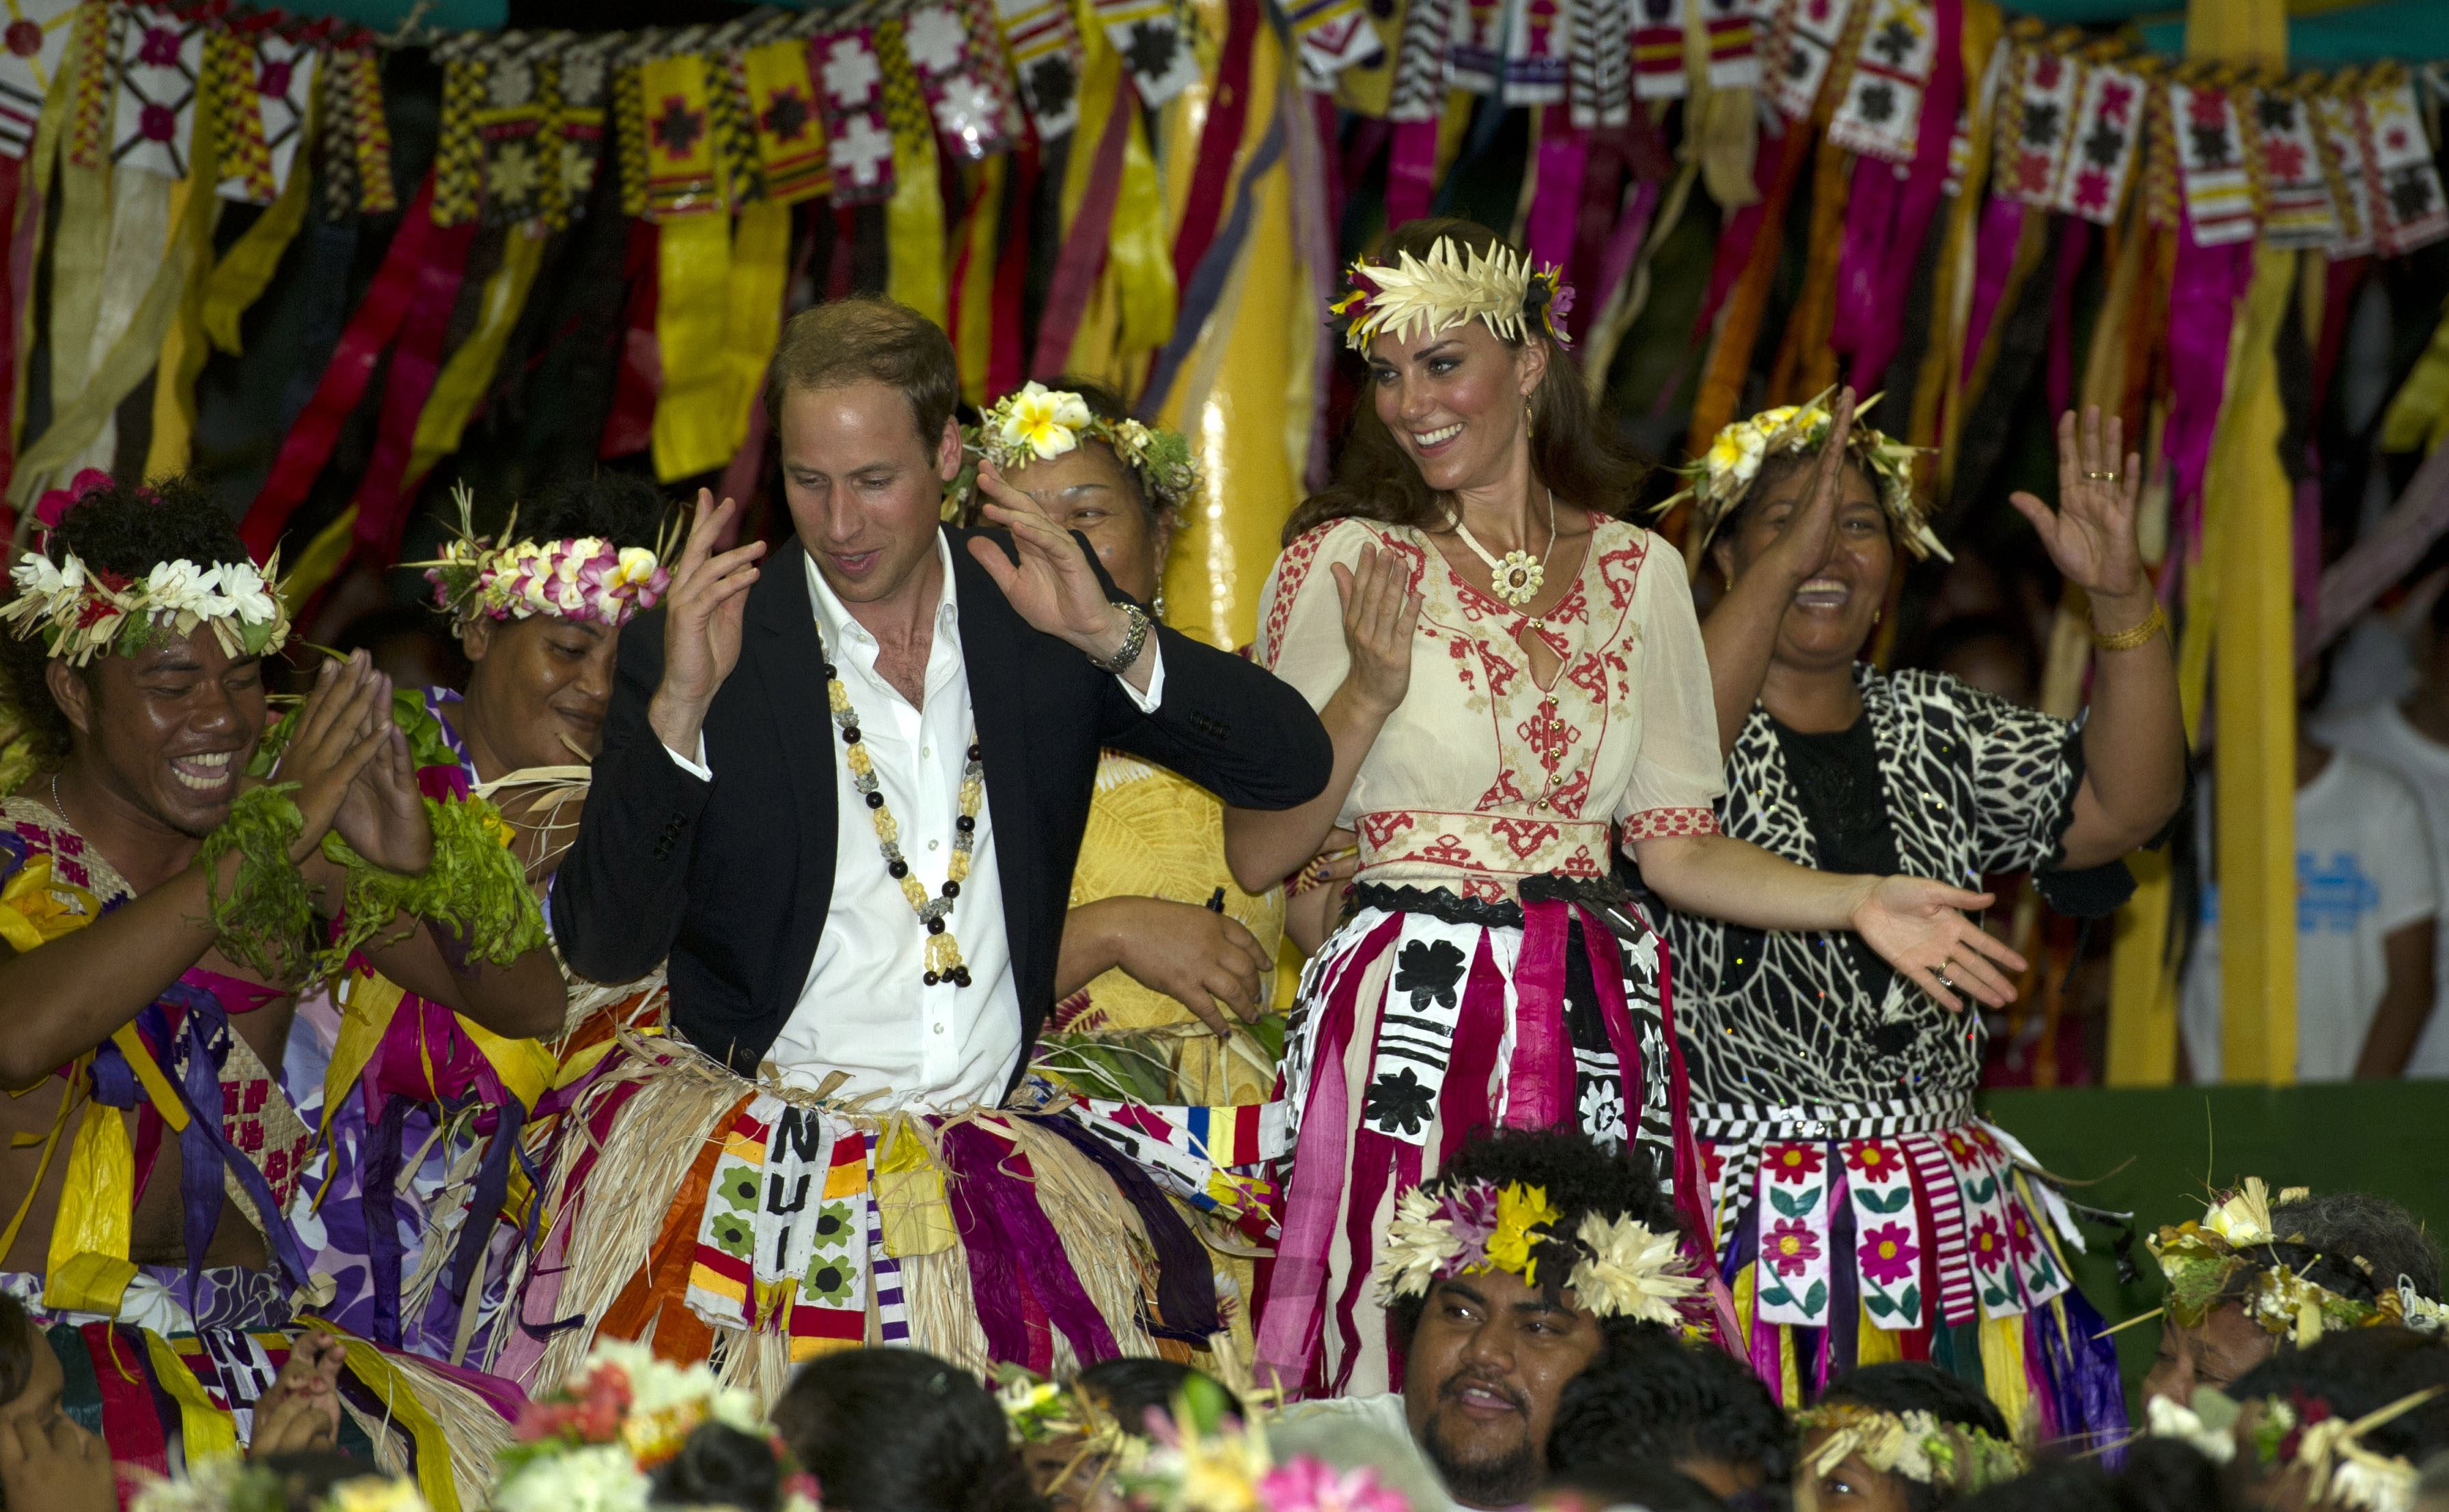 Prince William, Duke of Cambridge and Catherine, Duchess of Cambridge and dance with local ladies at a Vaiku Falekaupule Ceremony during the Royal couple's Diamond Jubilee tour of the Far East on September 18, 2012 in Funafuti, Tuvalu.